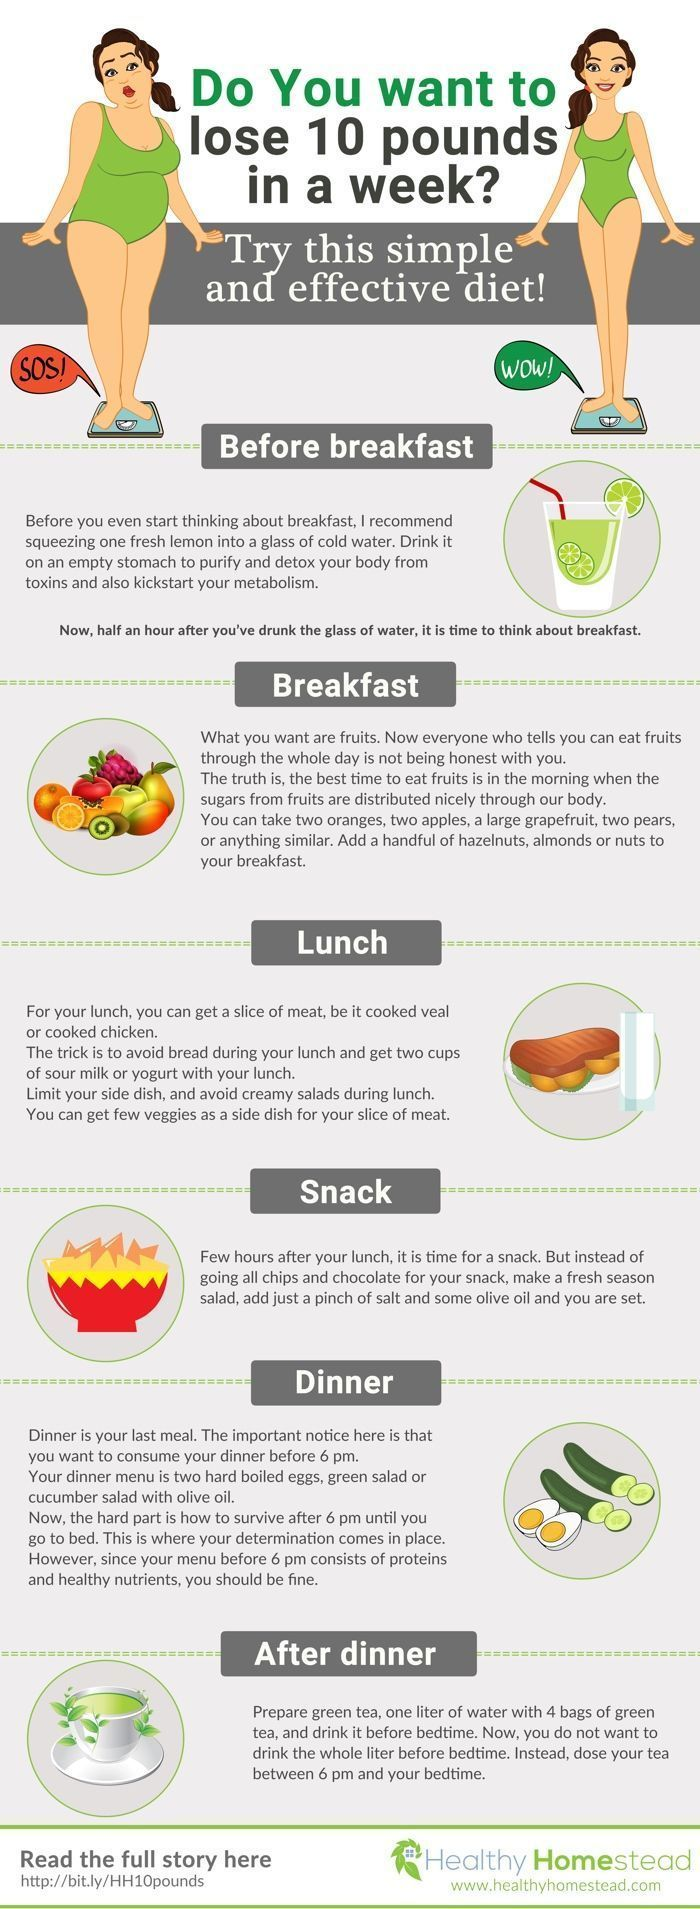 Top 5 Actually Best Ways to Lose Weight Fast  Properly Today (You Really Need…